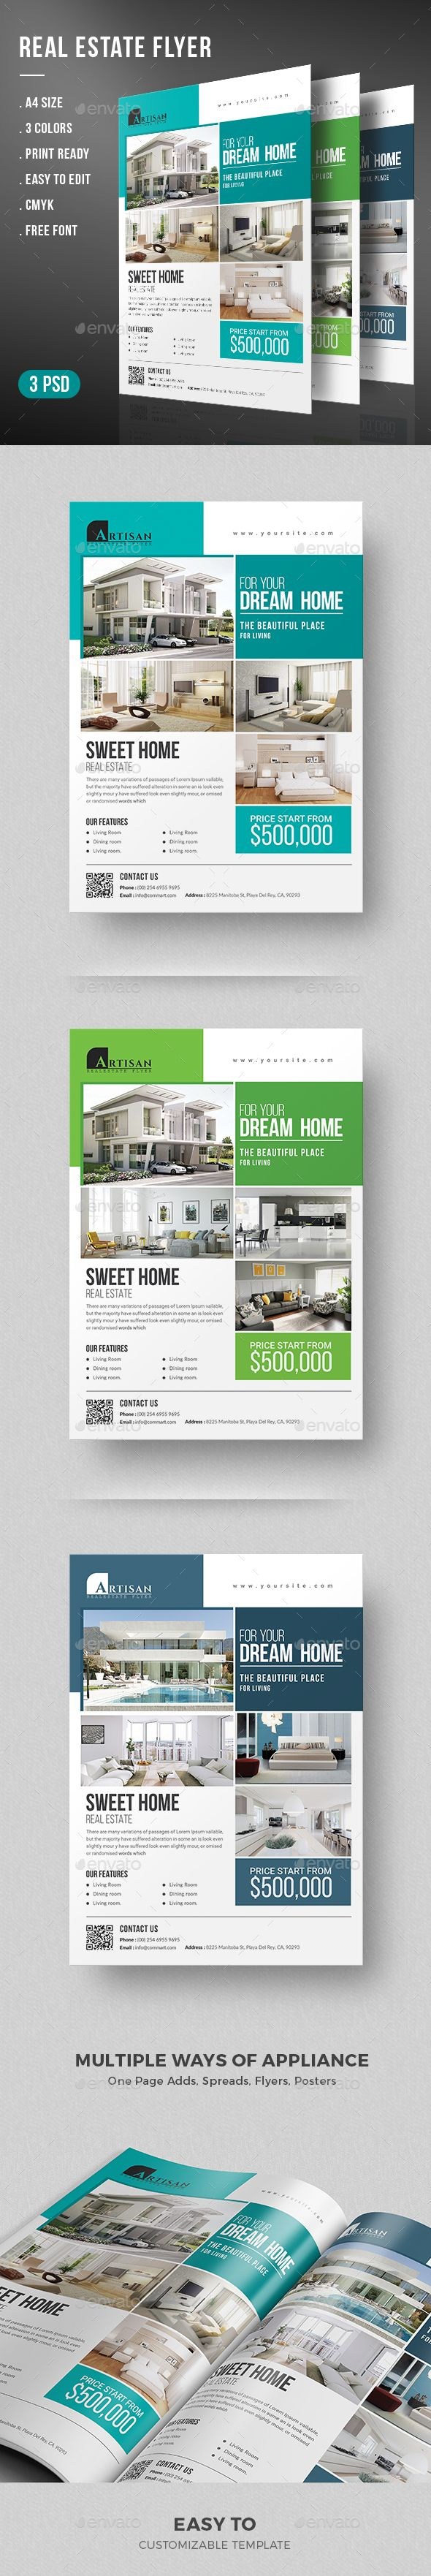 Best 25+ Real estate flyers ideas on Pinterest